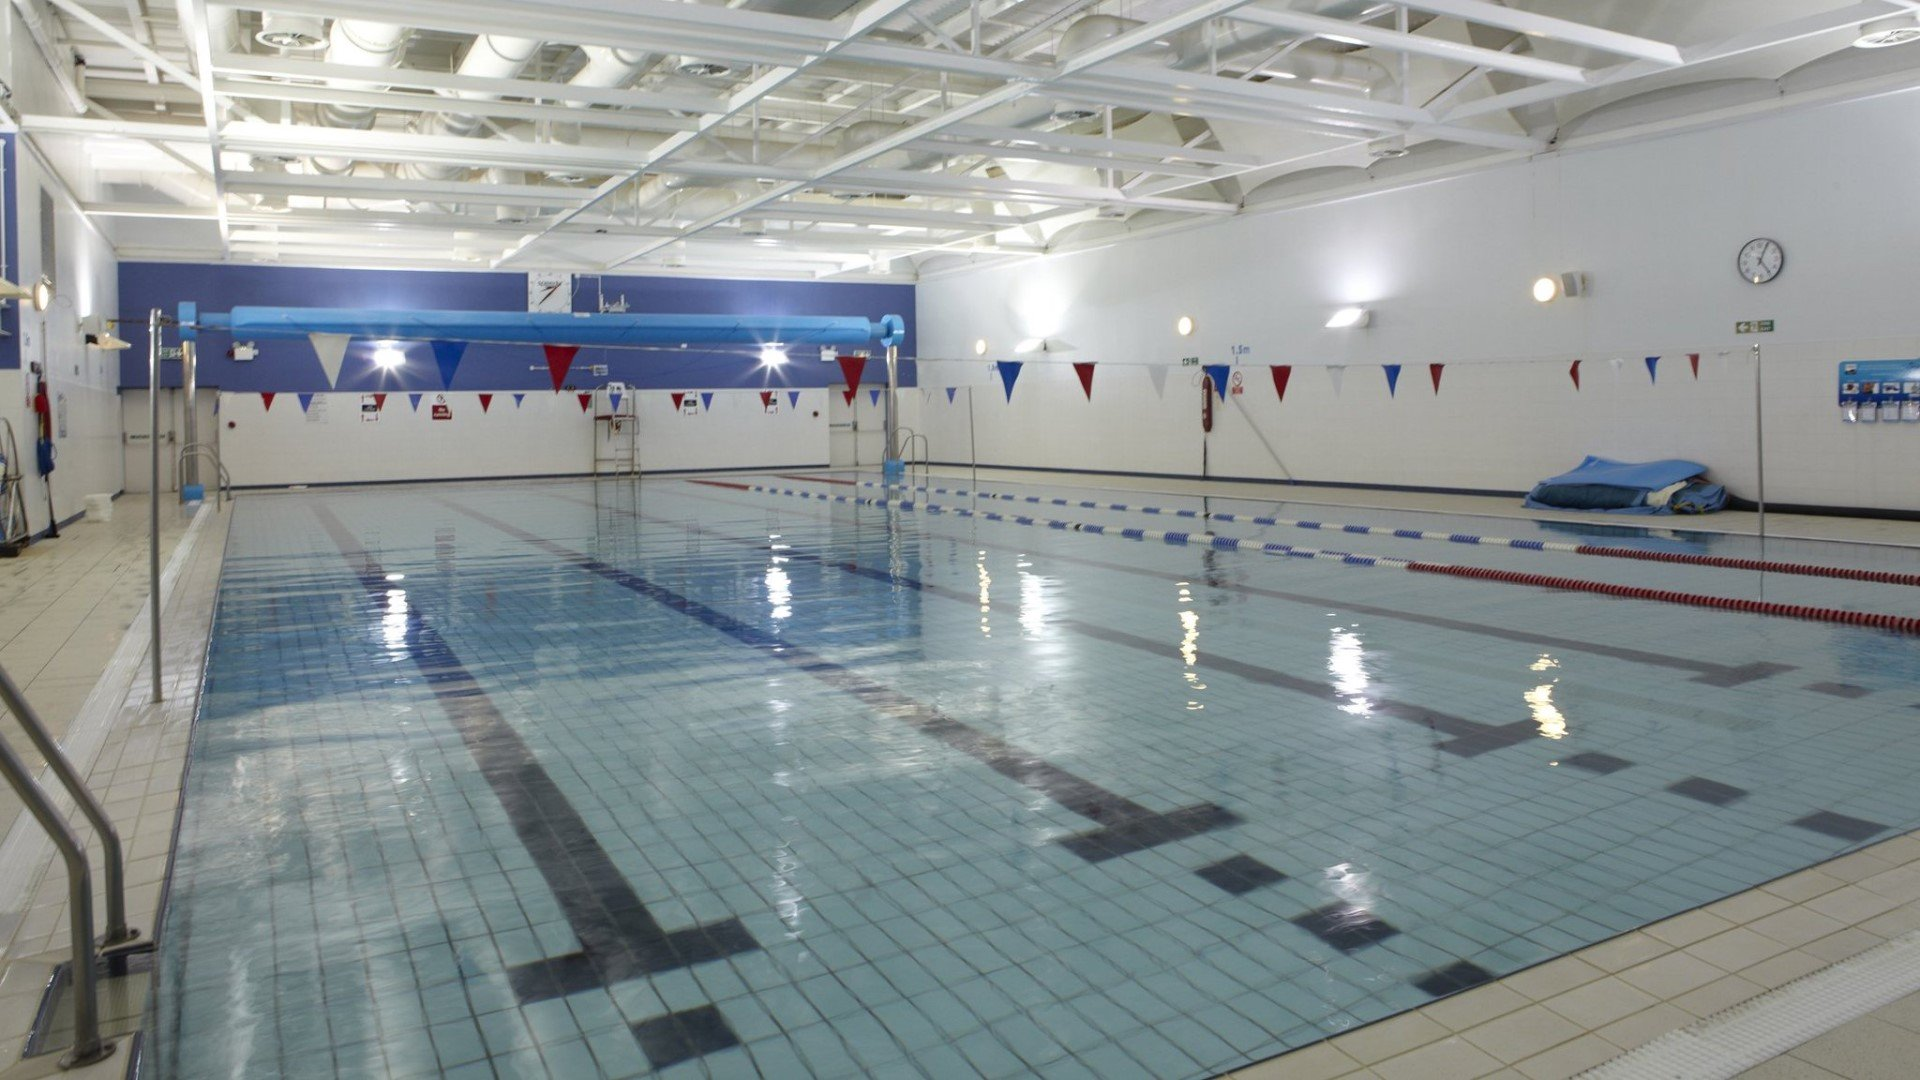 Temporary closure of swimming pool at Ferry Leisure Centre